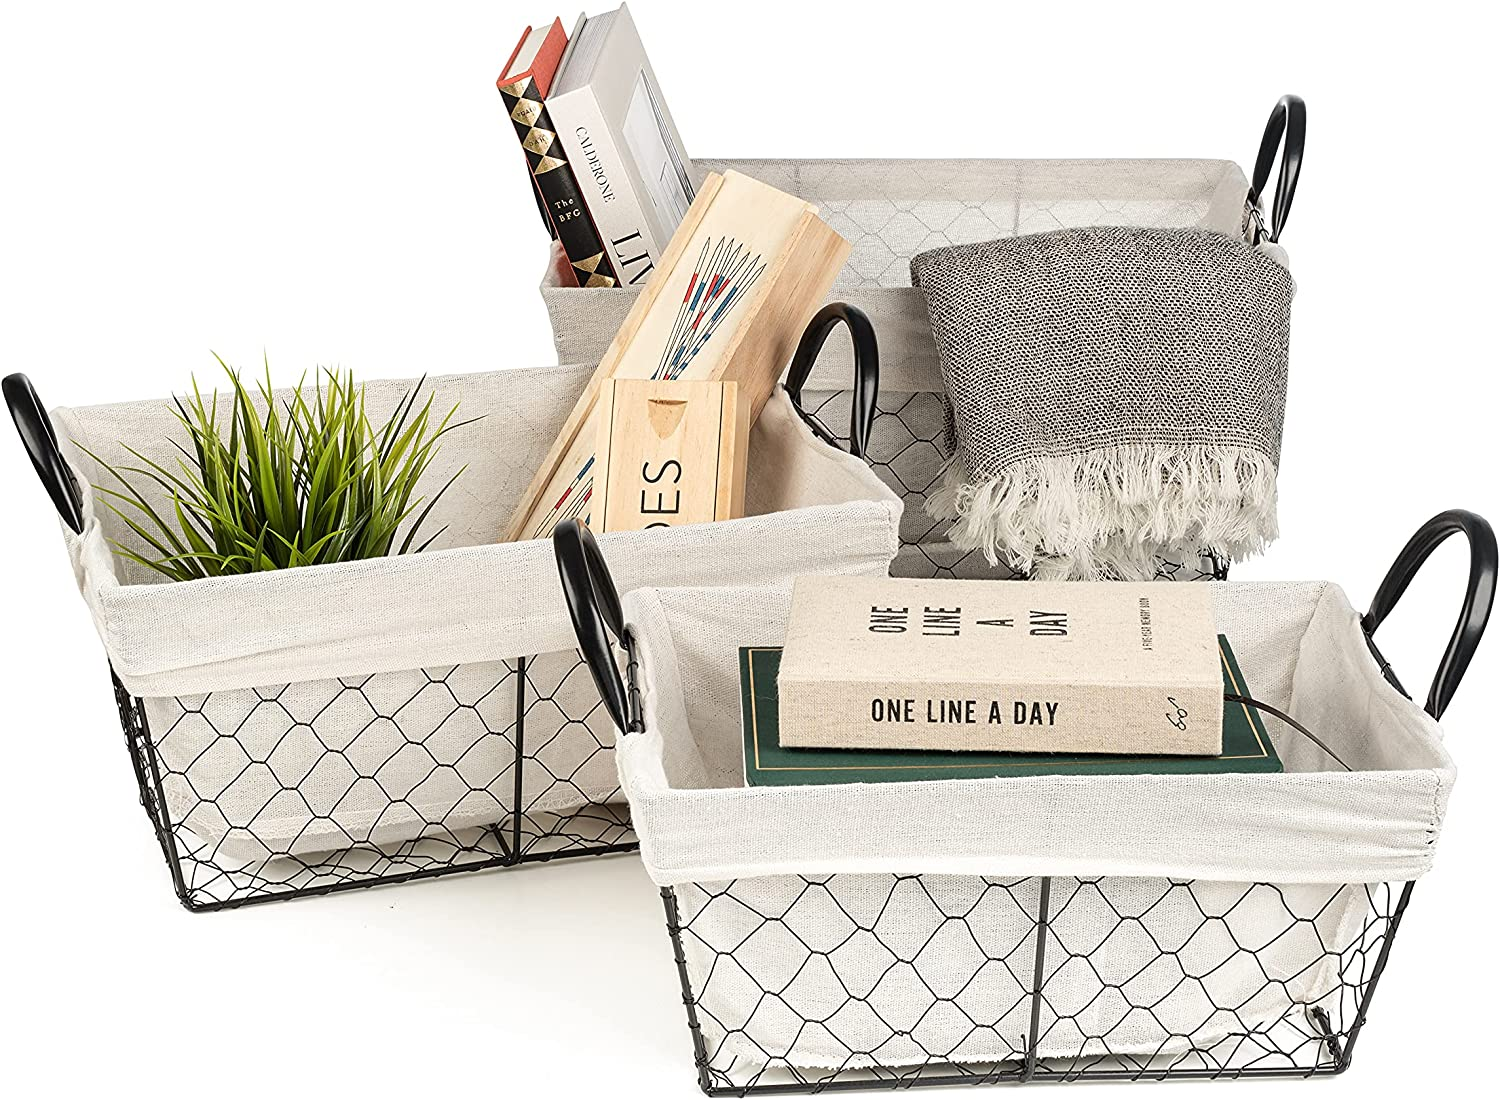 Sorbus Wire Basket Set with Removable Fabric Liner, Rectangular Open Home Storage Bins & Decorative Baskets for Organizing Shelves, Living Room, Bathroom, Kitchen, etc (Rectangle - White)